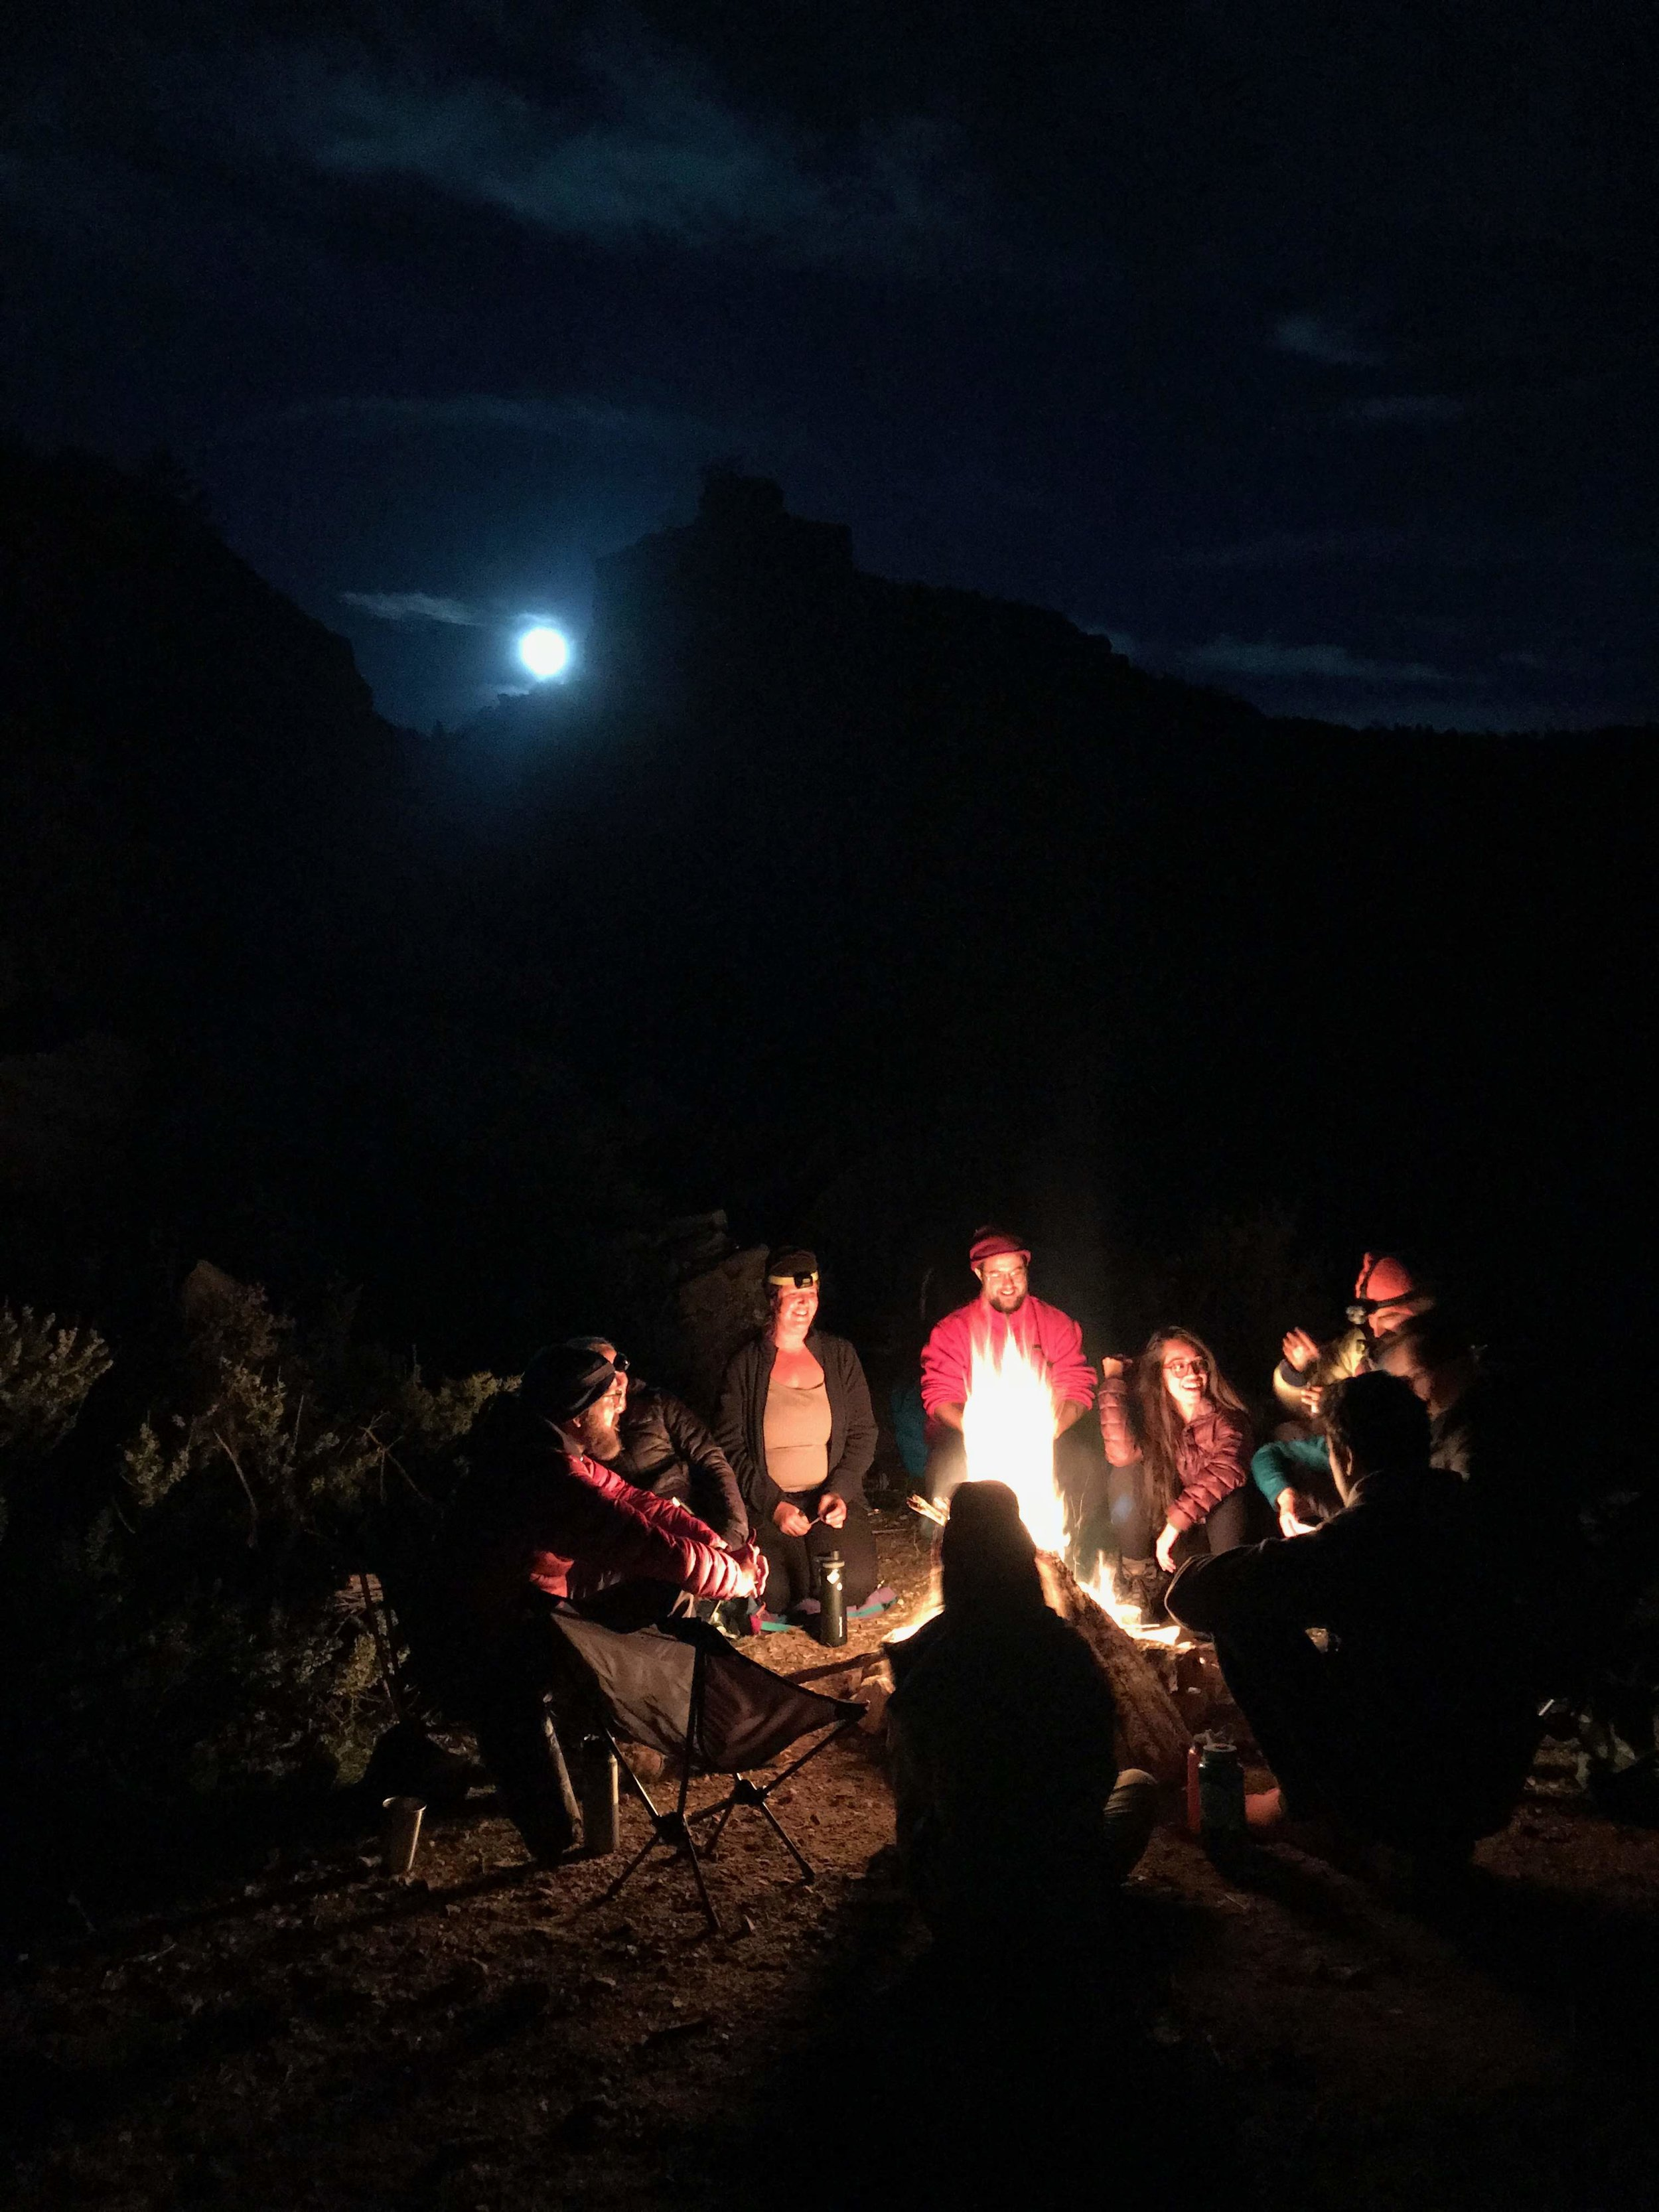 One of our last nights in the backcountry. Snake Gulch, AZ.